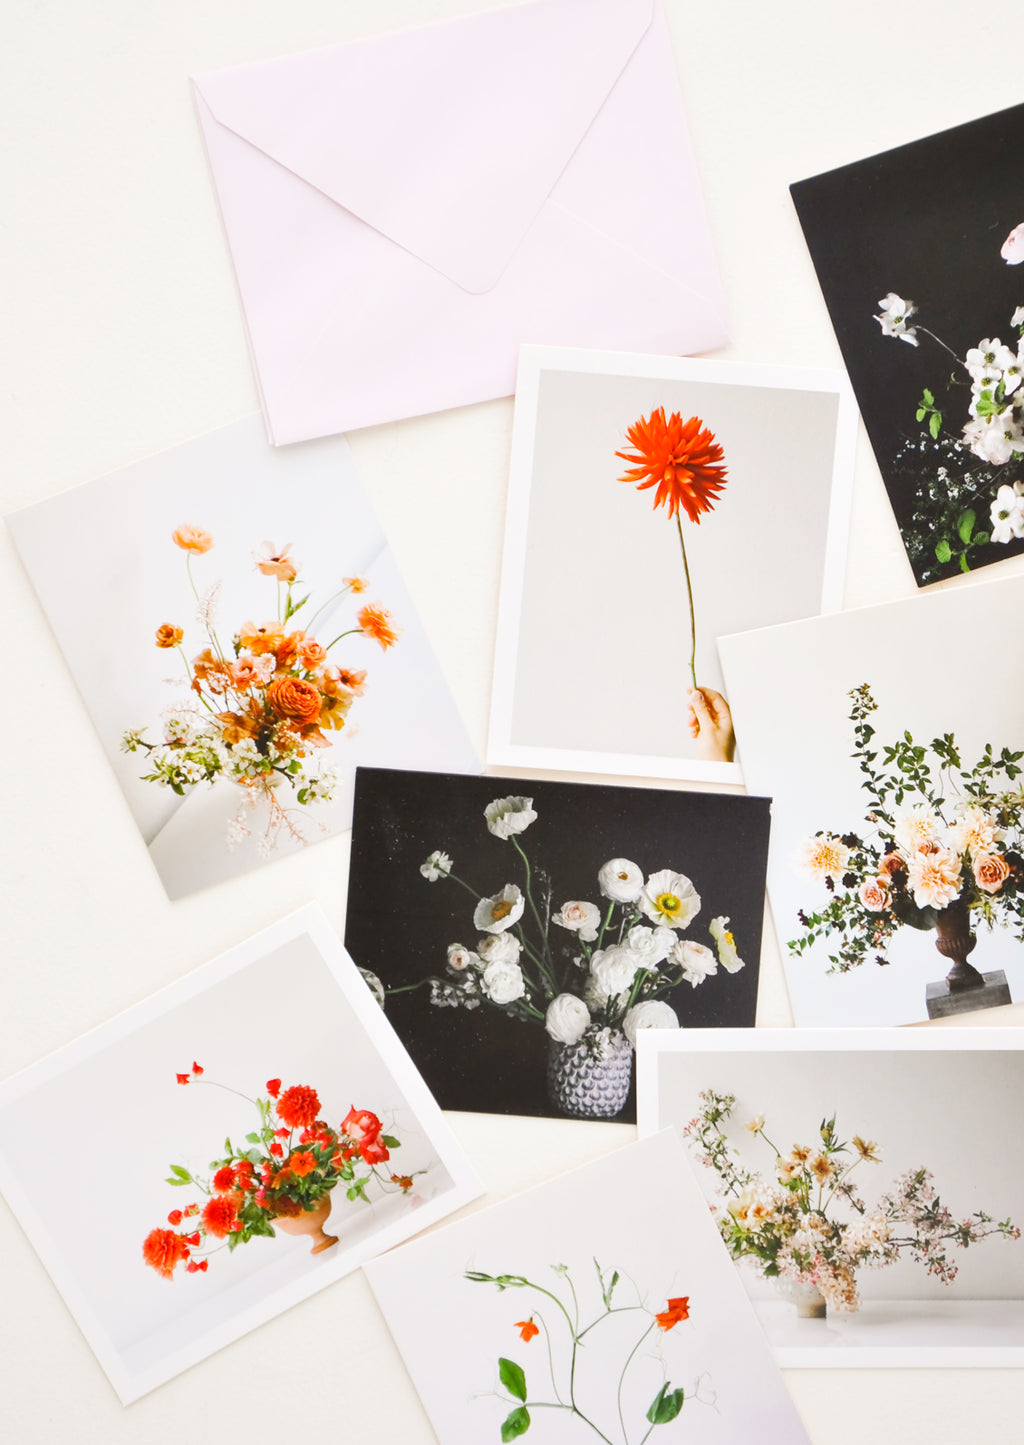 1: Product show showing multiple styles of floral photography notecards.